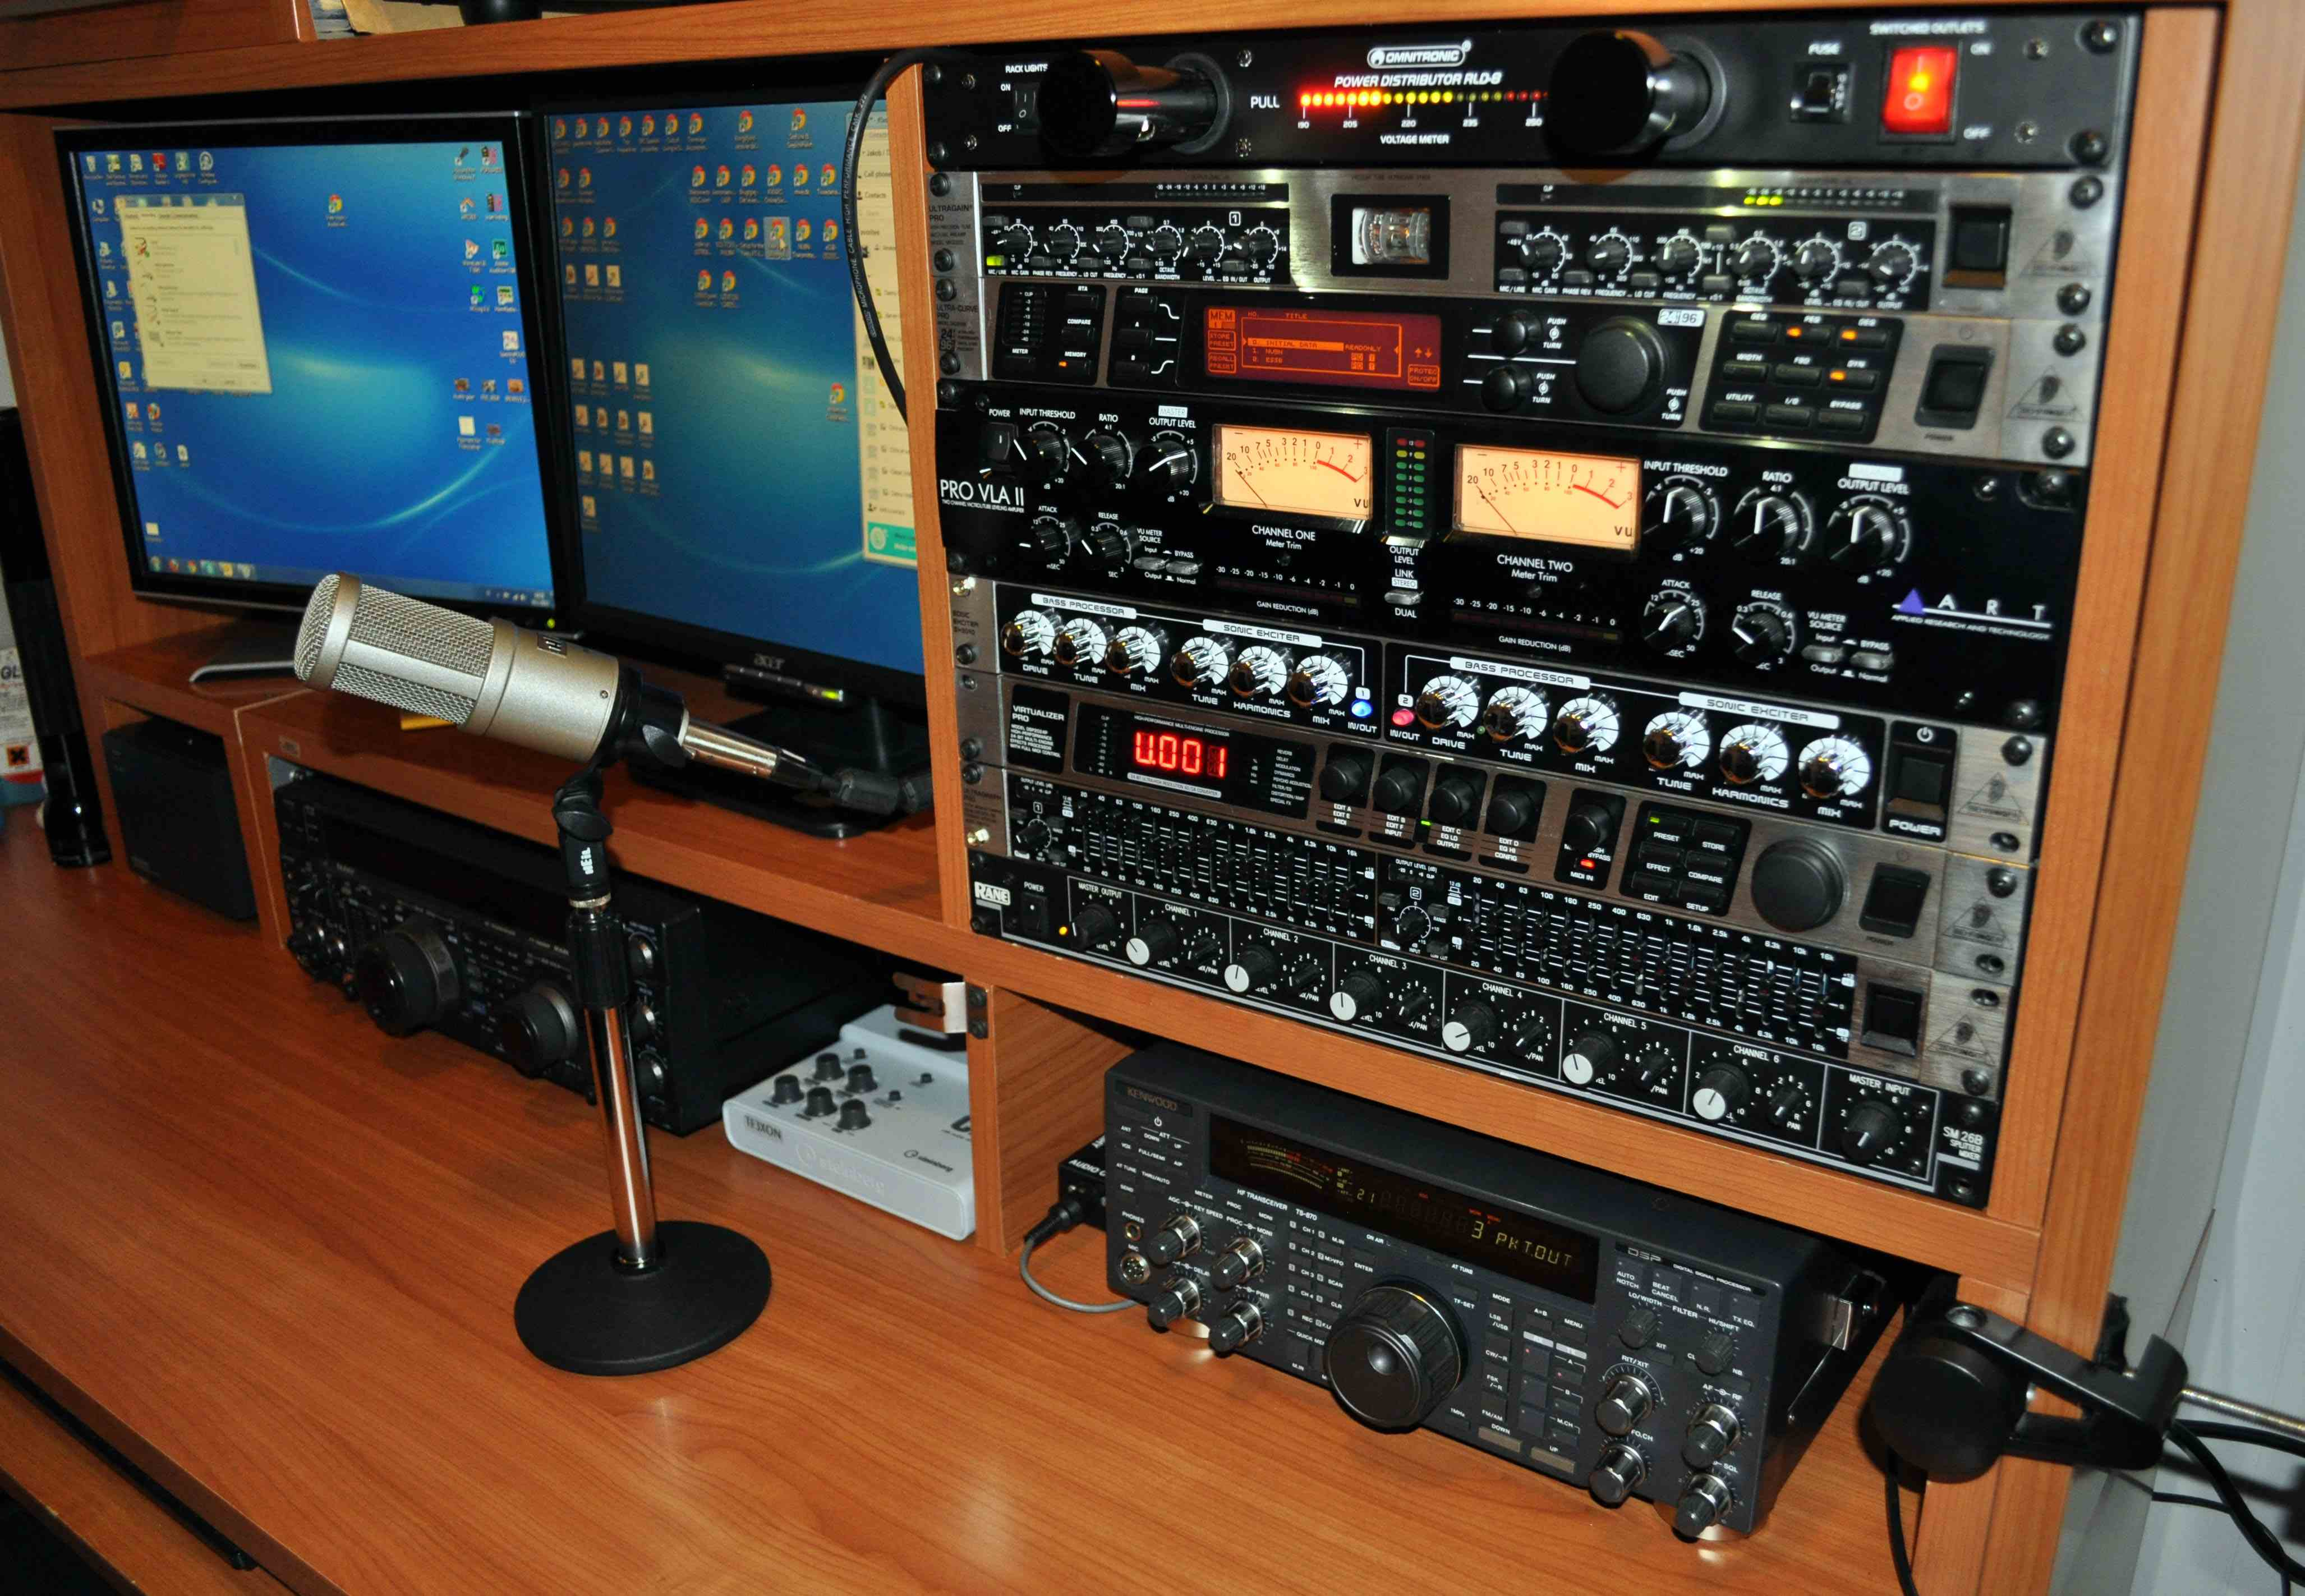 The Voodoo Audio Rack of TF3XON!